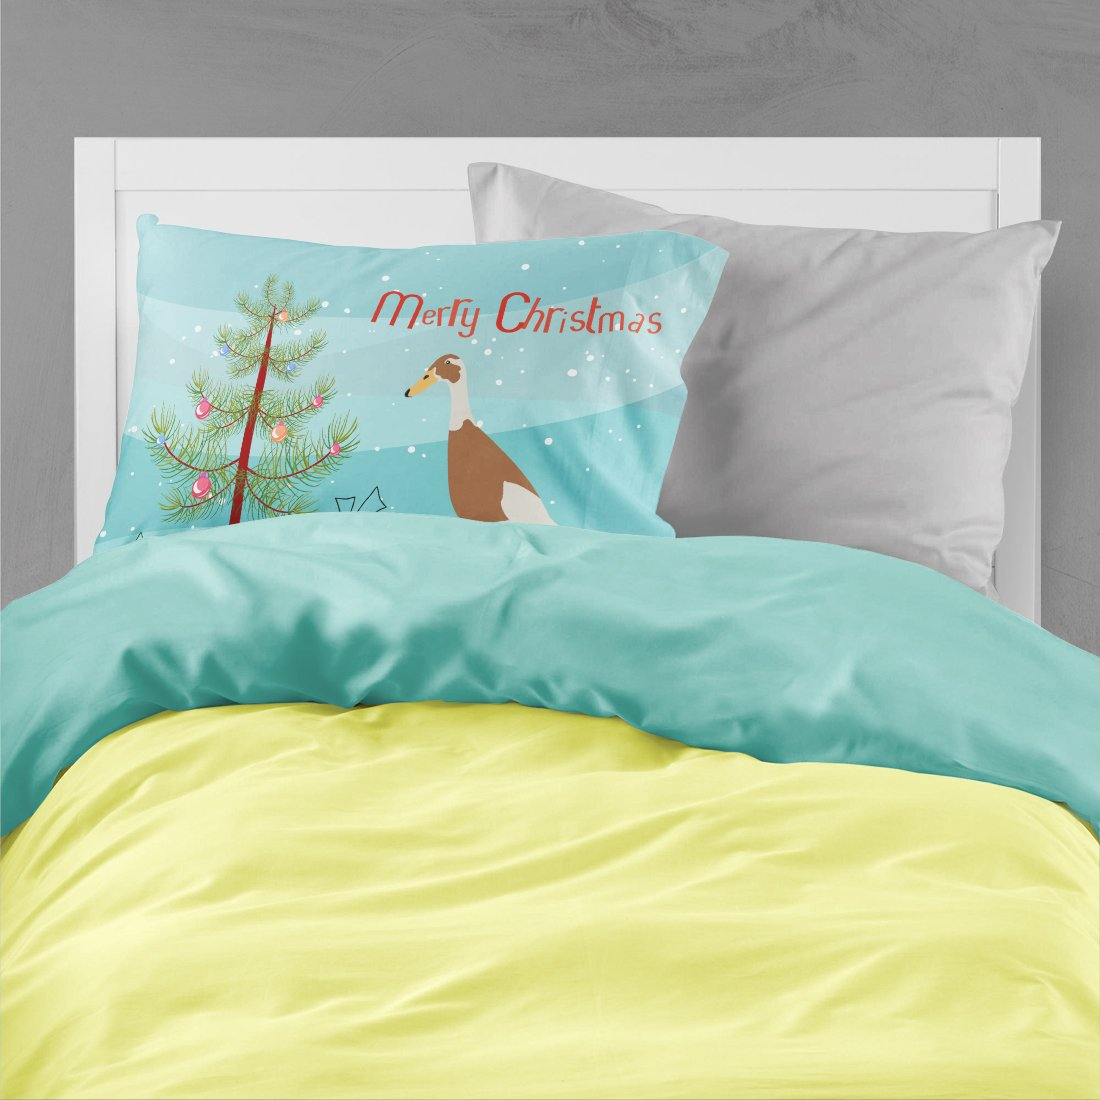 Indian Runner Duck Christmas Fabric Standard Pillowcase BB9232PILLOWCASE by Caroline's Treasures